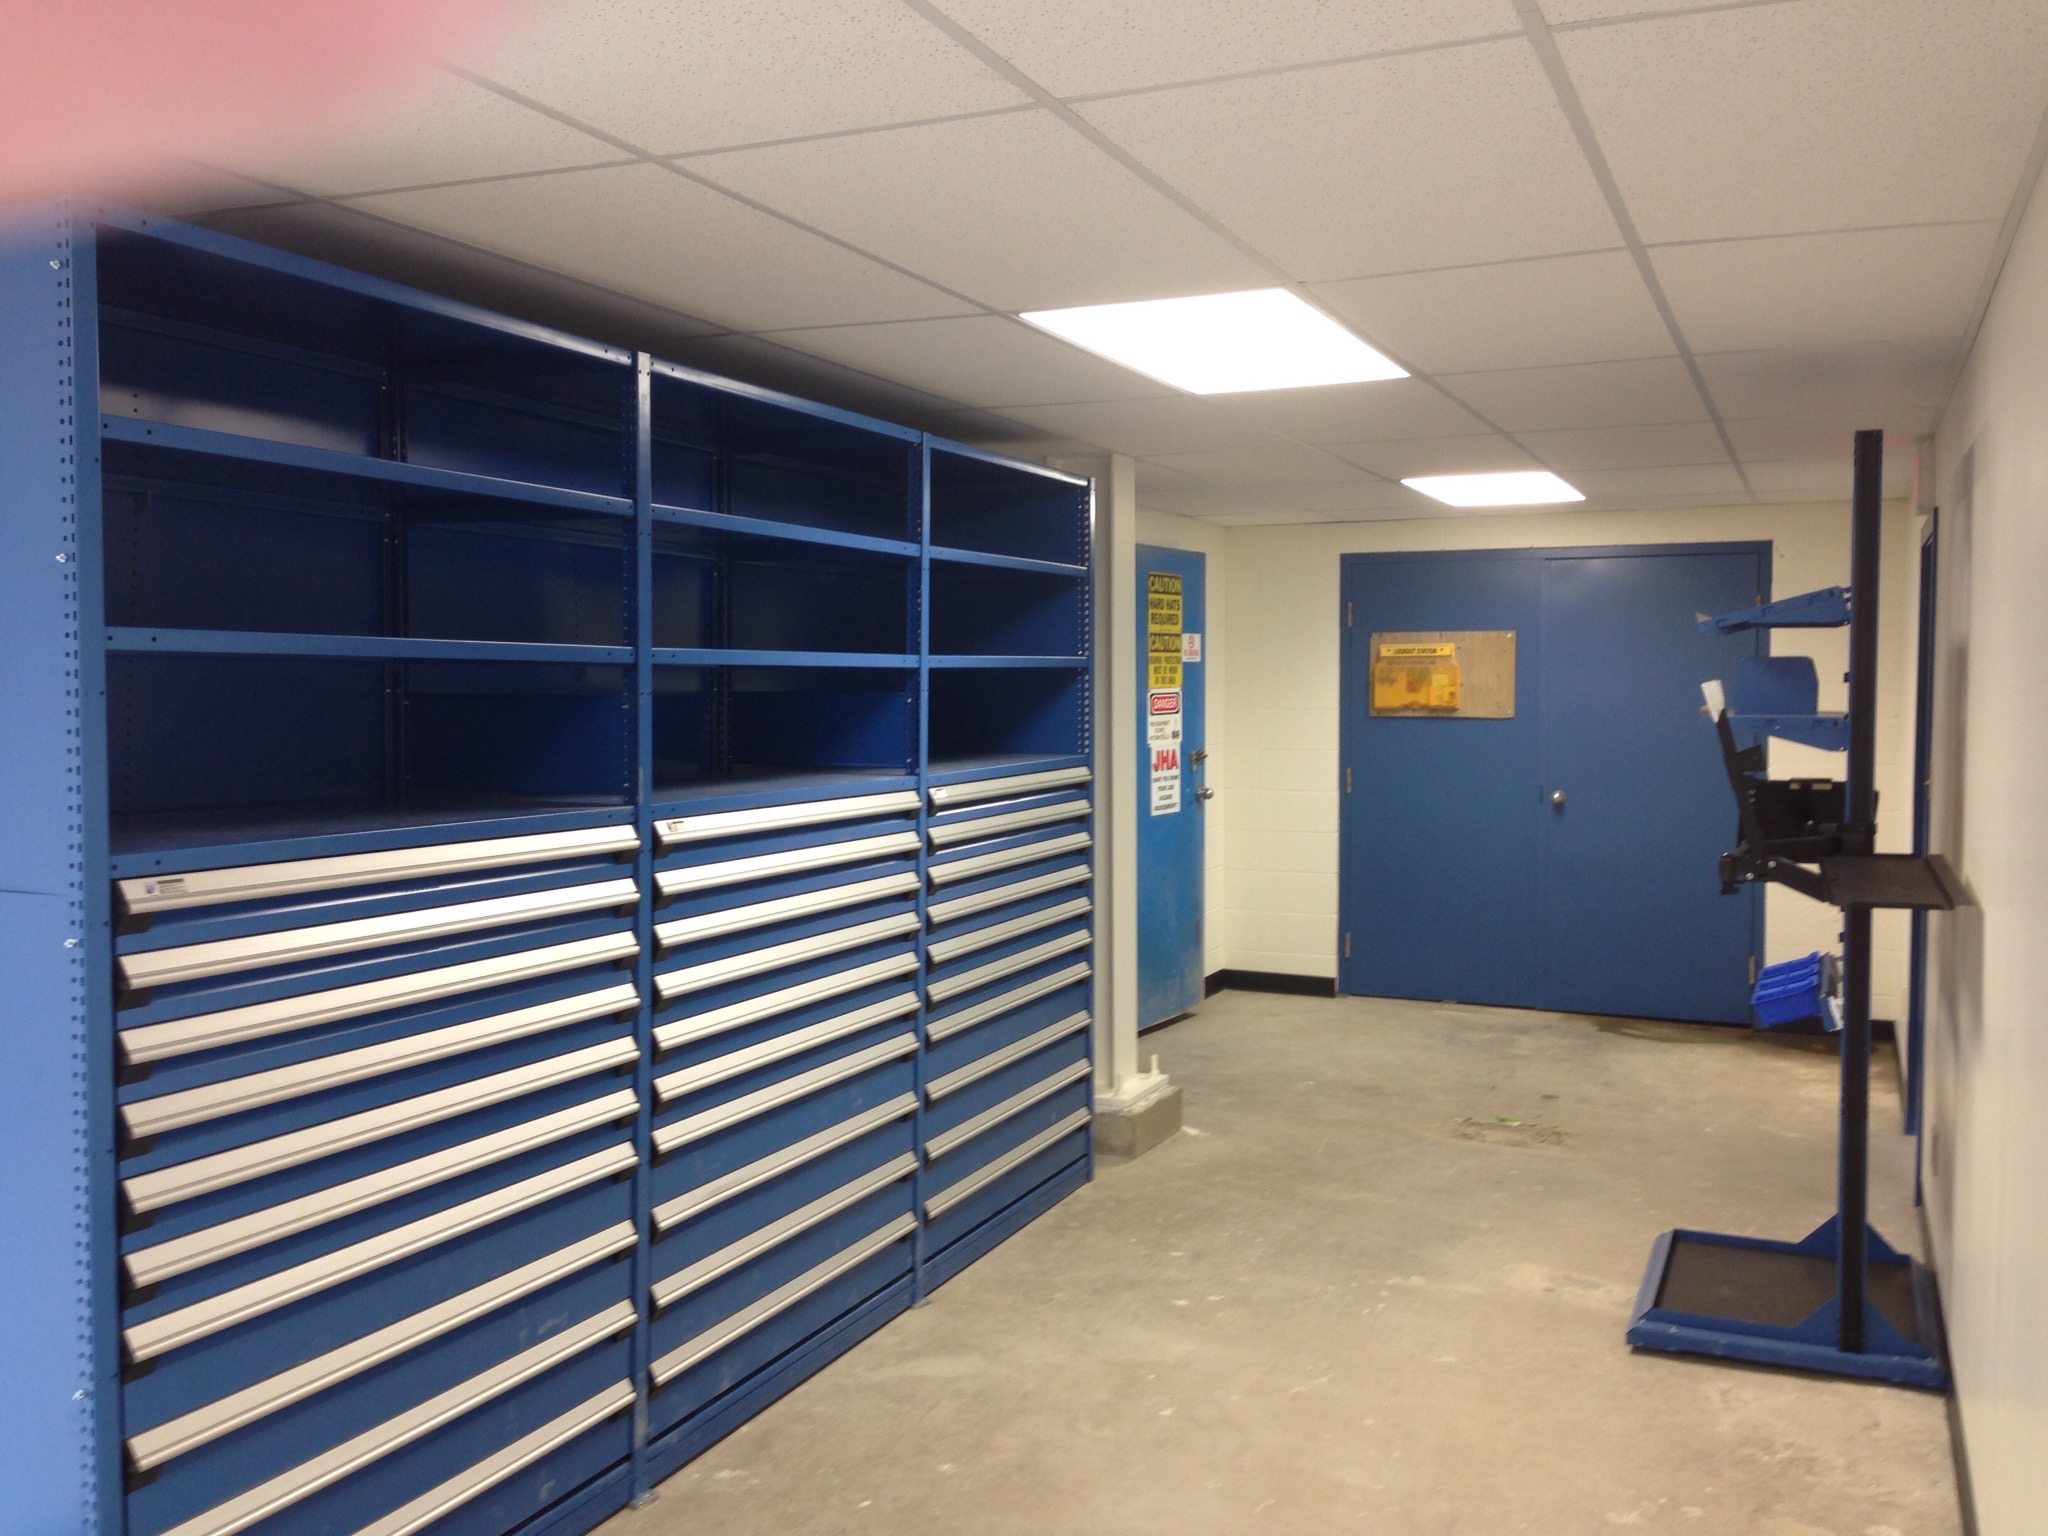 WS01  Warehouse & Shops - General Contractors Commercial Renovations in Edmonton, Office and Warehouse Project Contractors